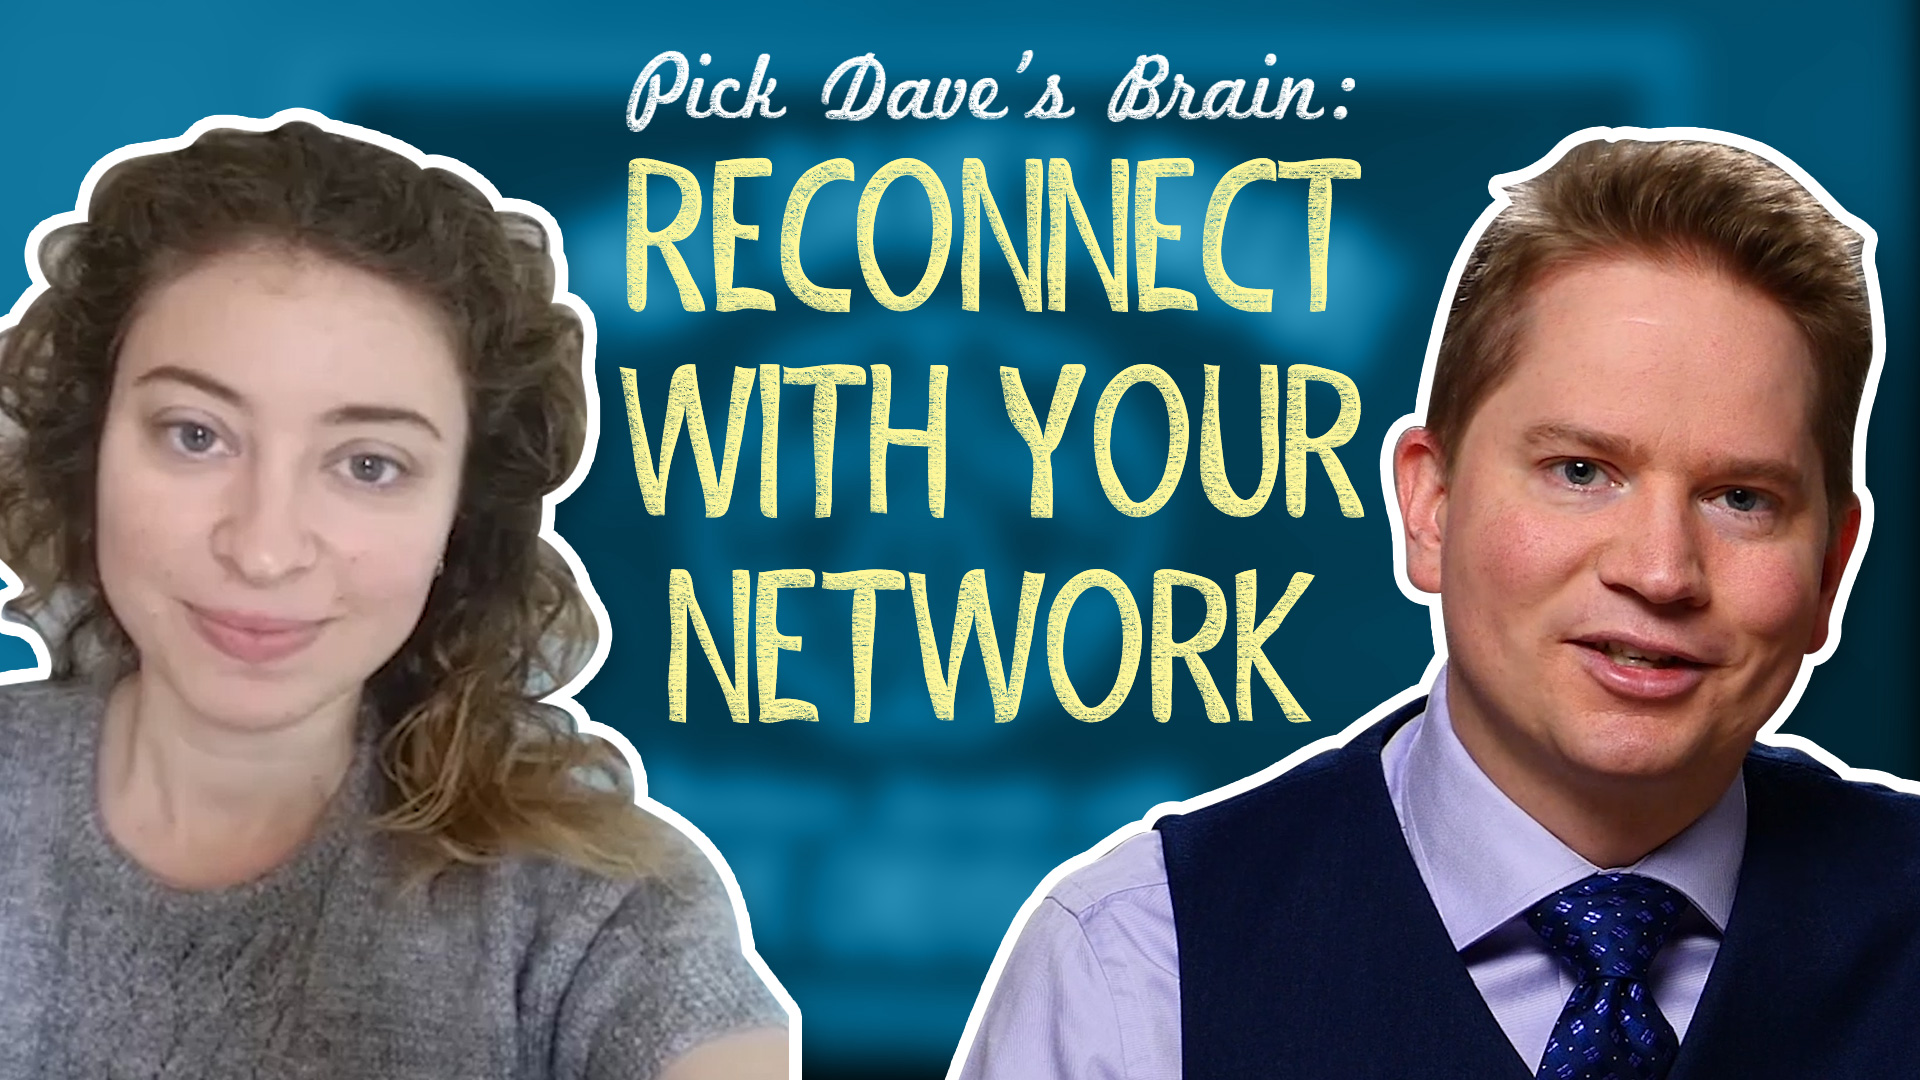 """How to Make """"Social Networking"""" Less Anti-social – Pick Dave's Brain"""